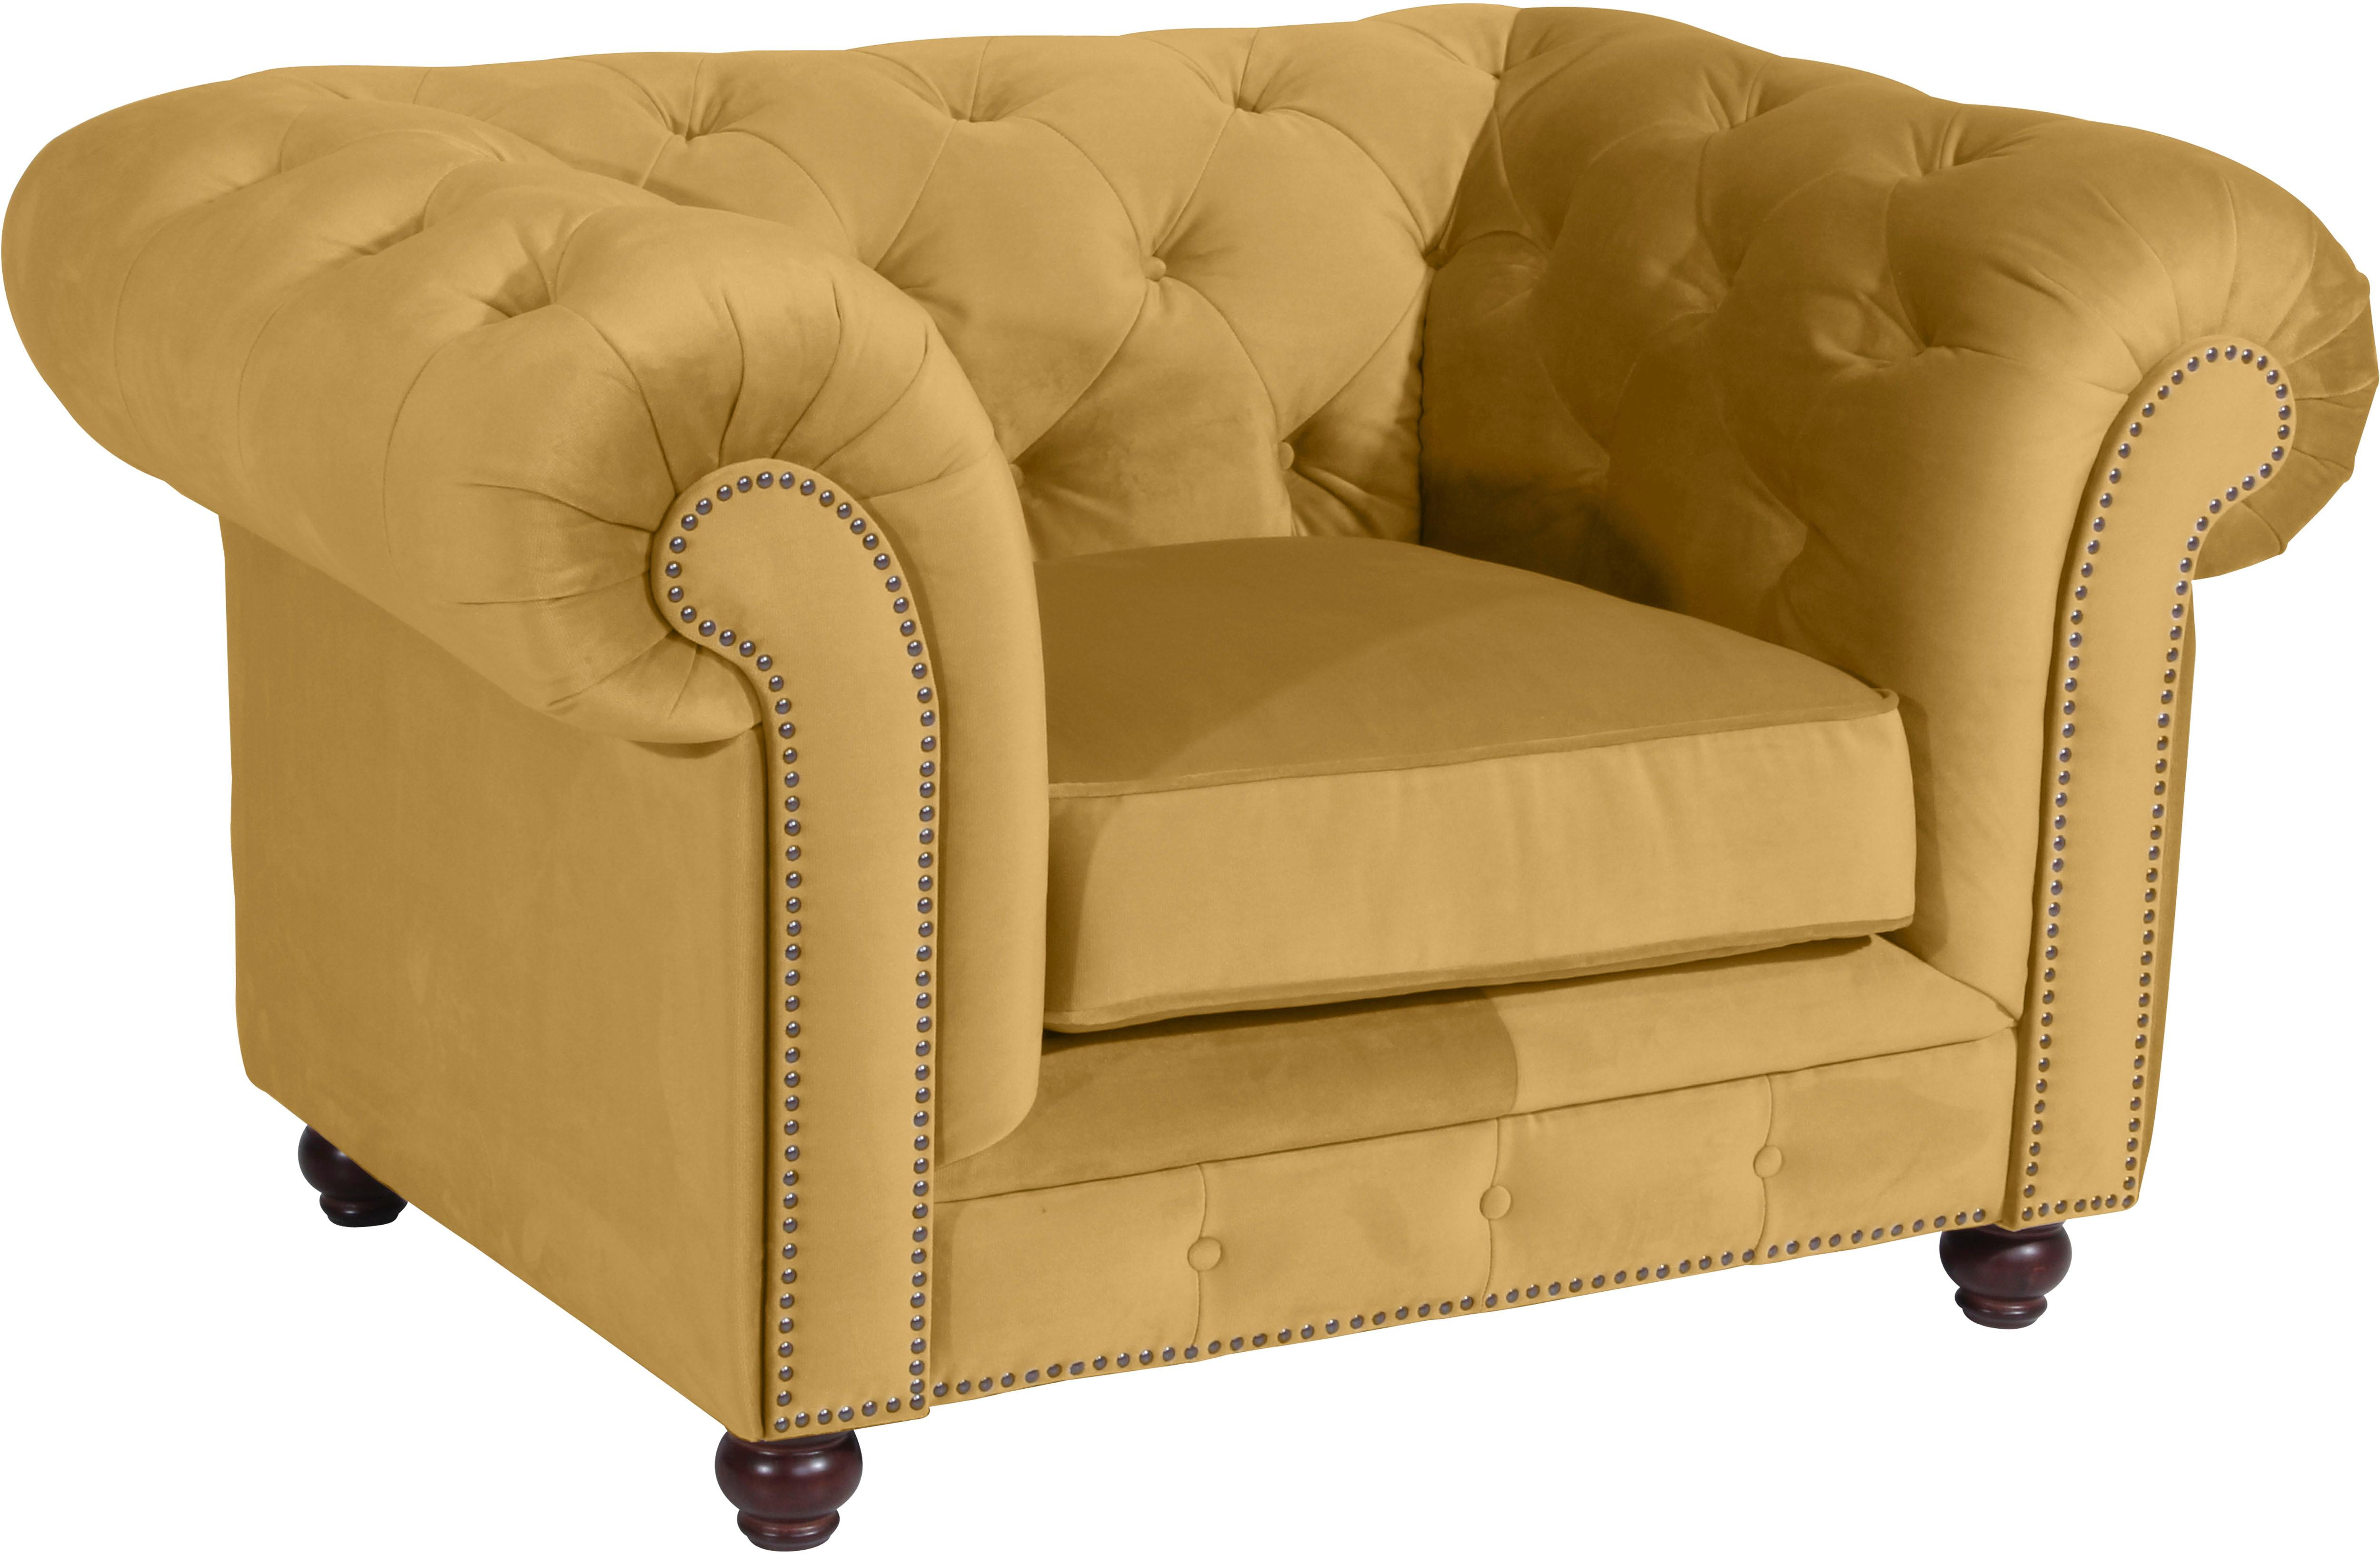 Max Winzer® Chesterfield-Sessel »Old England« | Wohnzimmer > Sessel > Chesterfield Sessel | Gelb | MAX WINZER